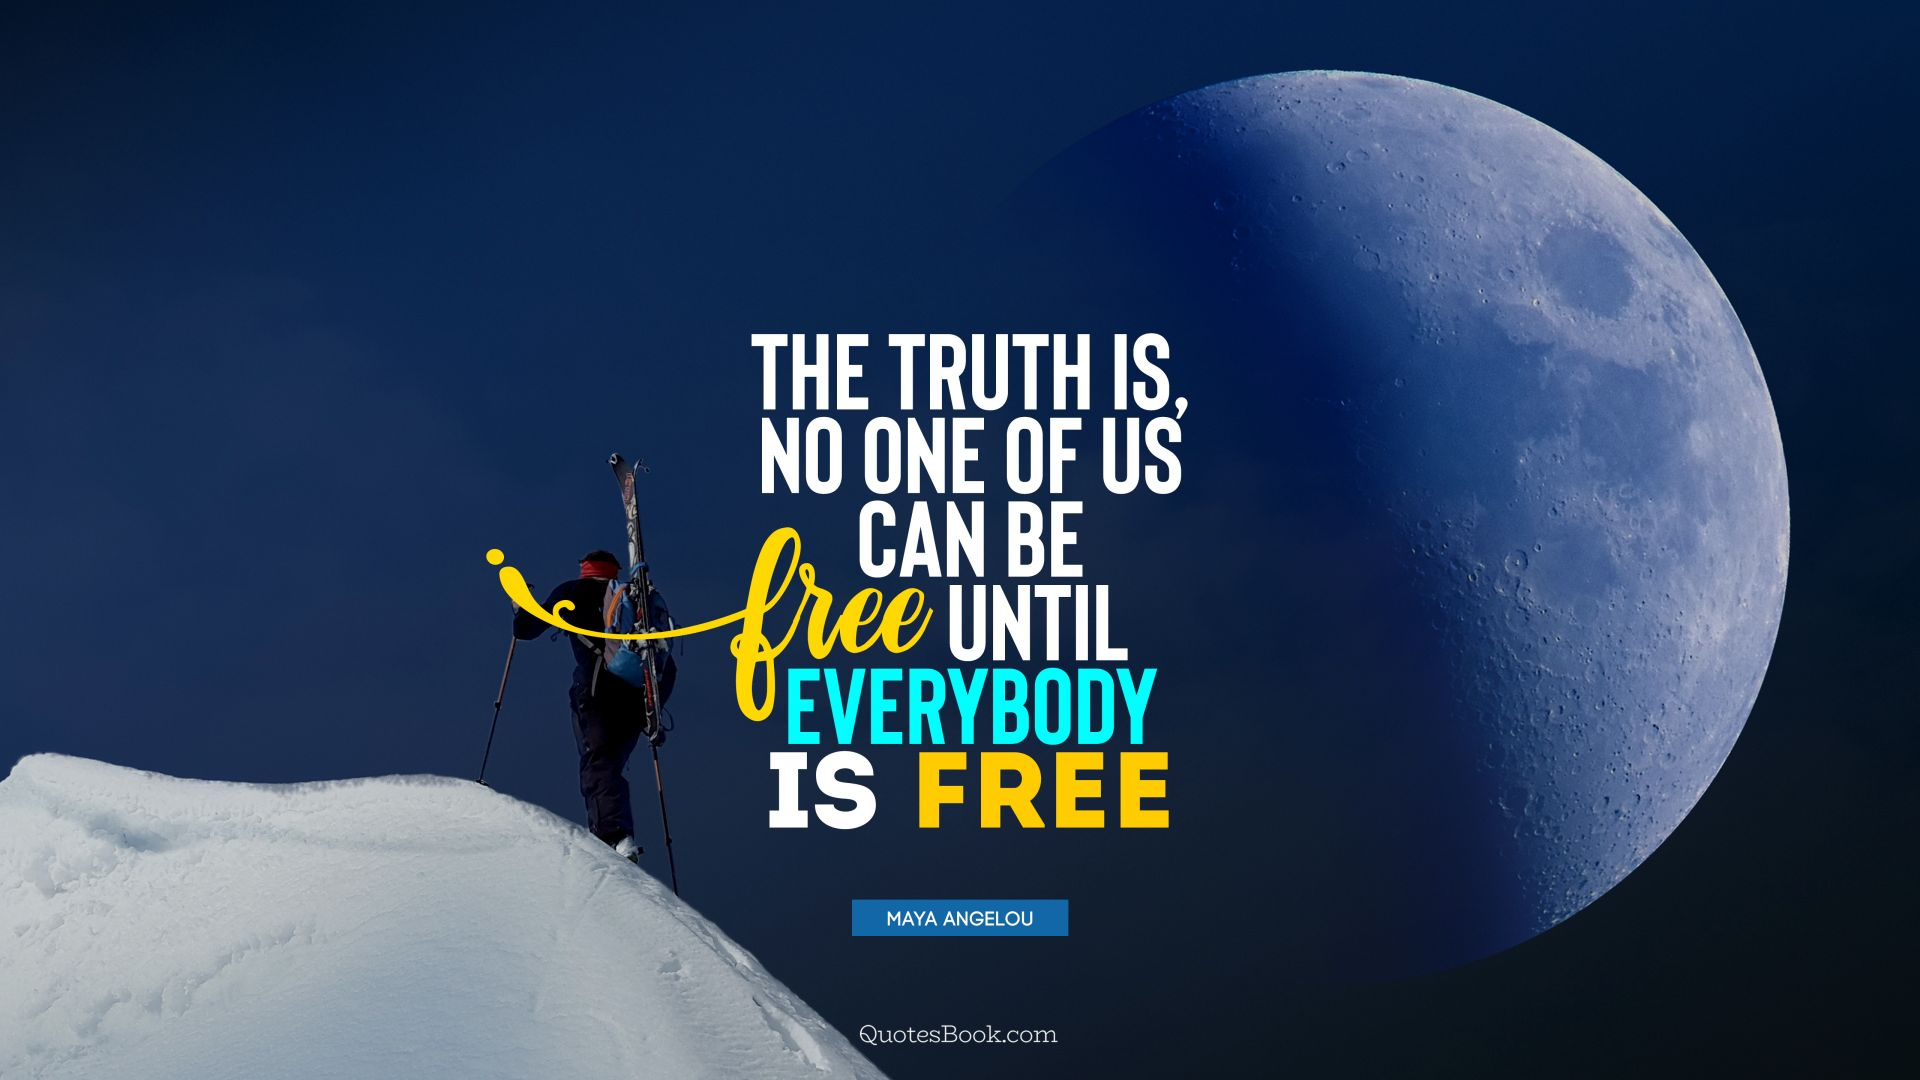 The truth is, no one of us can be free until everybody is free. - Quote by Maya Angelou